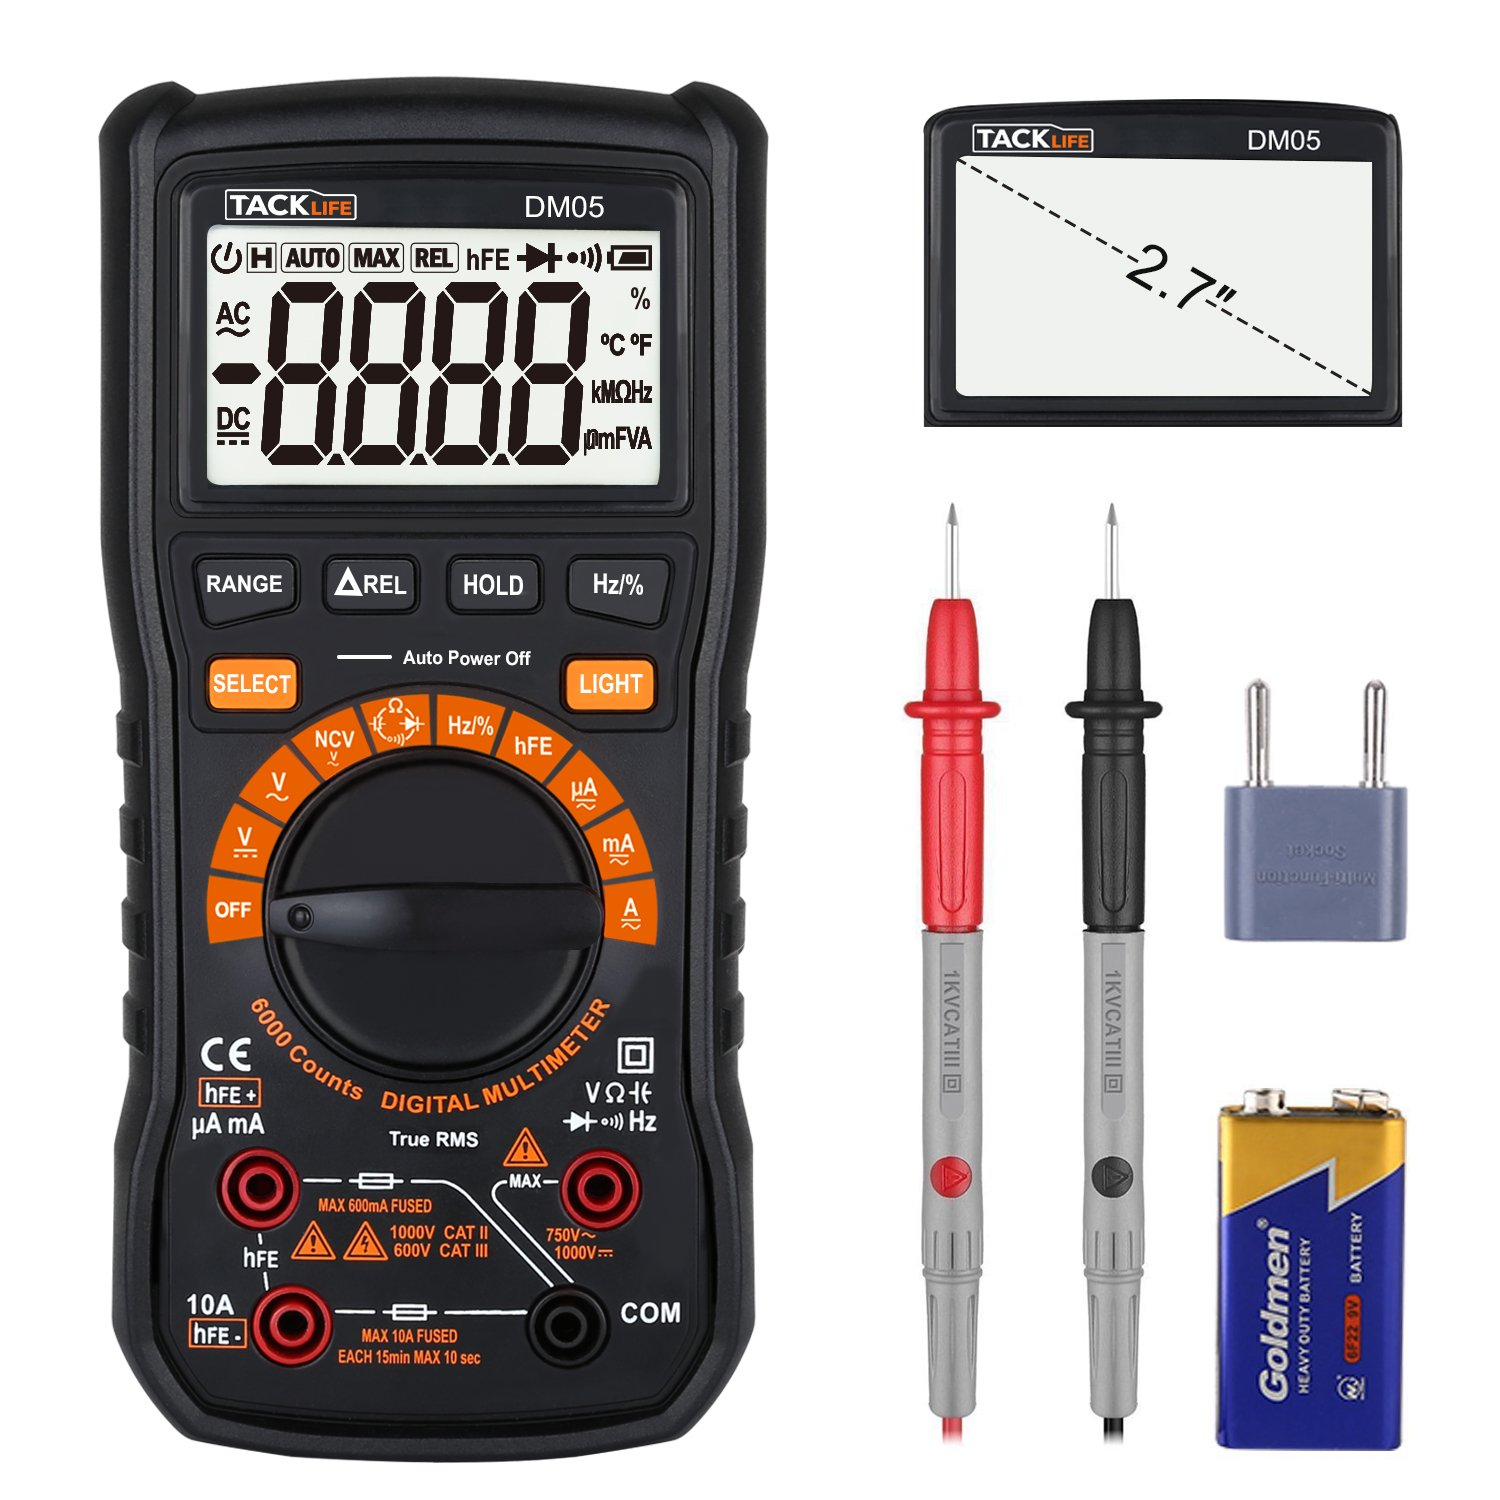 Multimeter, Tacklife DM05 Digital Multi Meter True RMS 6000 Counts Auto/Manual Ranging Non Contact AC/DC Voltage and Current, Frequency, Resistance, Capacitance, Diode, Triode, Duty Cycle Tester